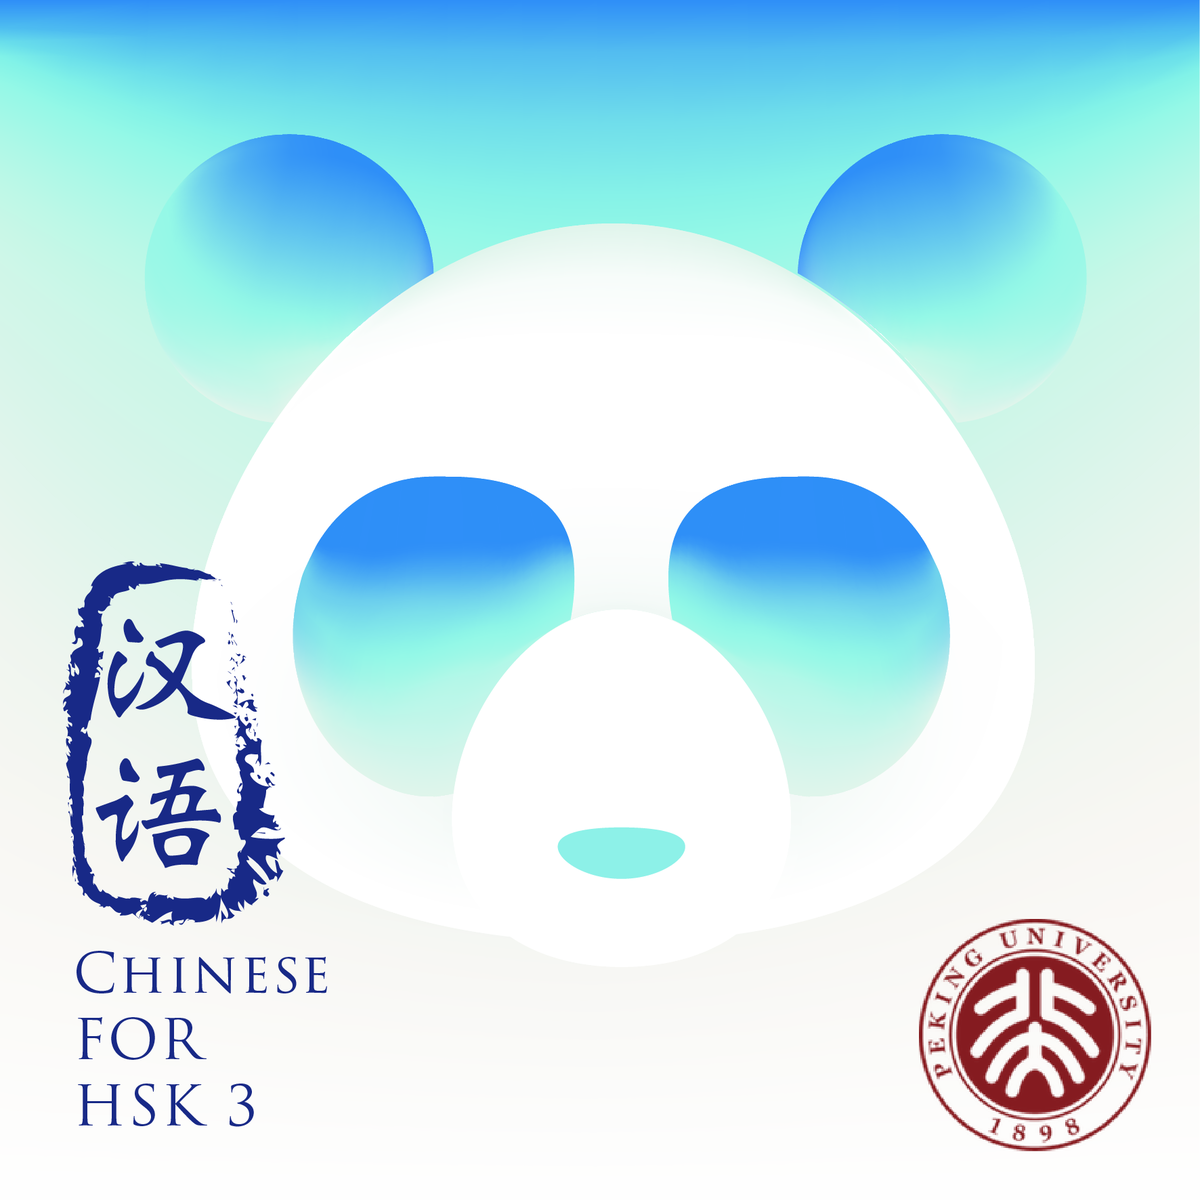 Chinese for HSK 3 PART I course image